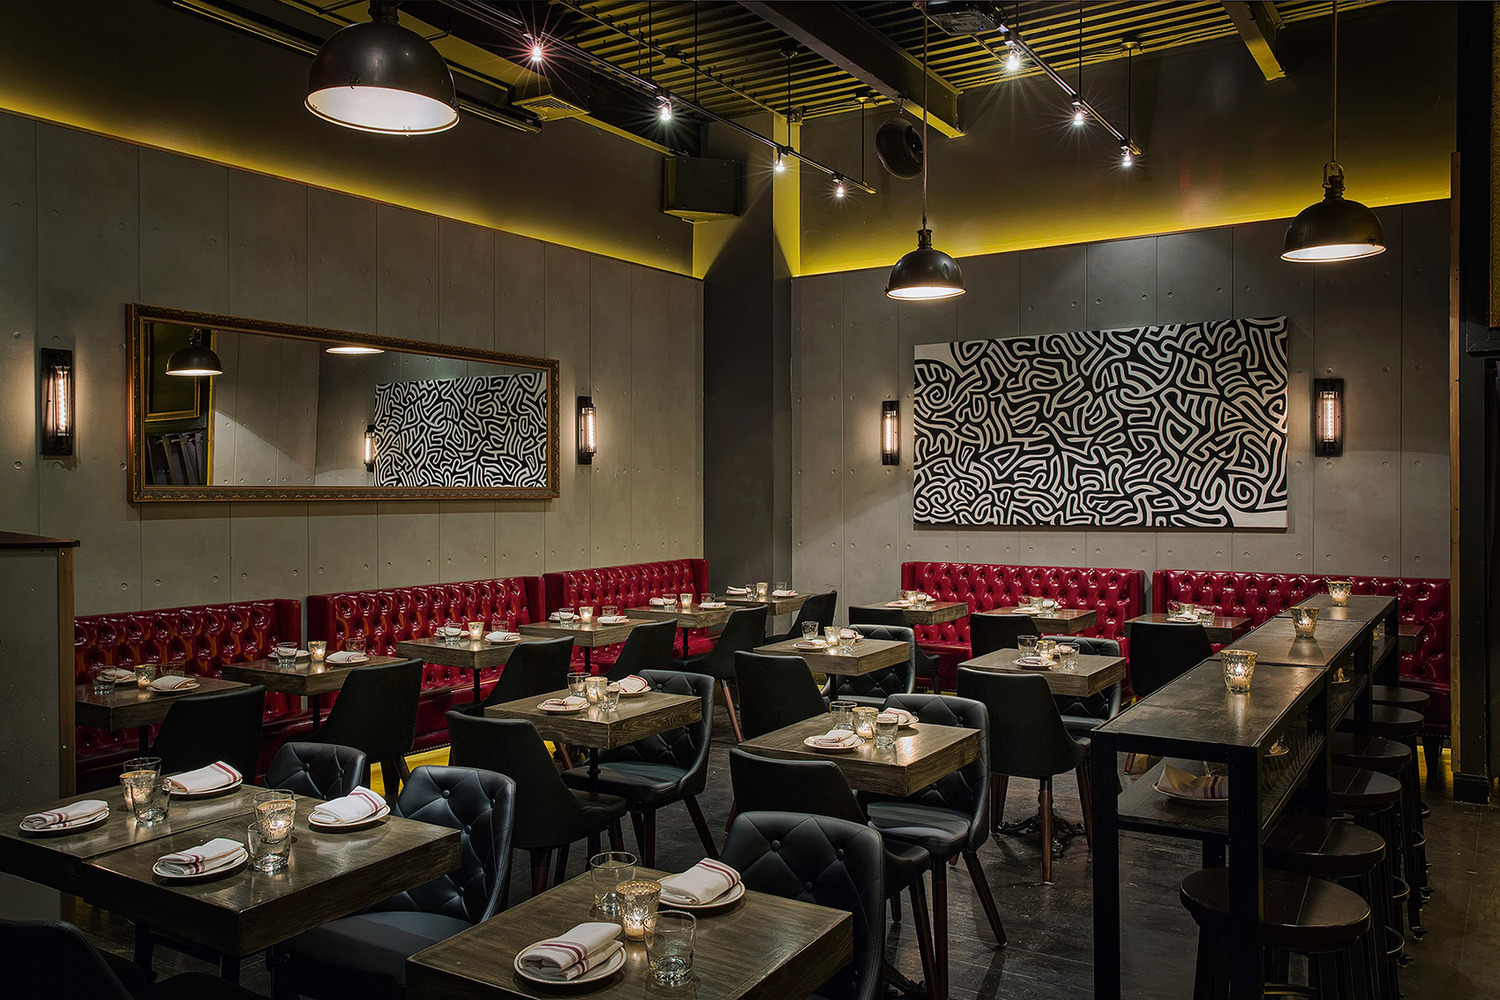 Main Dining Room  event space at The Regal in New York City, NYC, NY/NJ Area